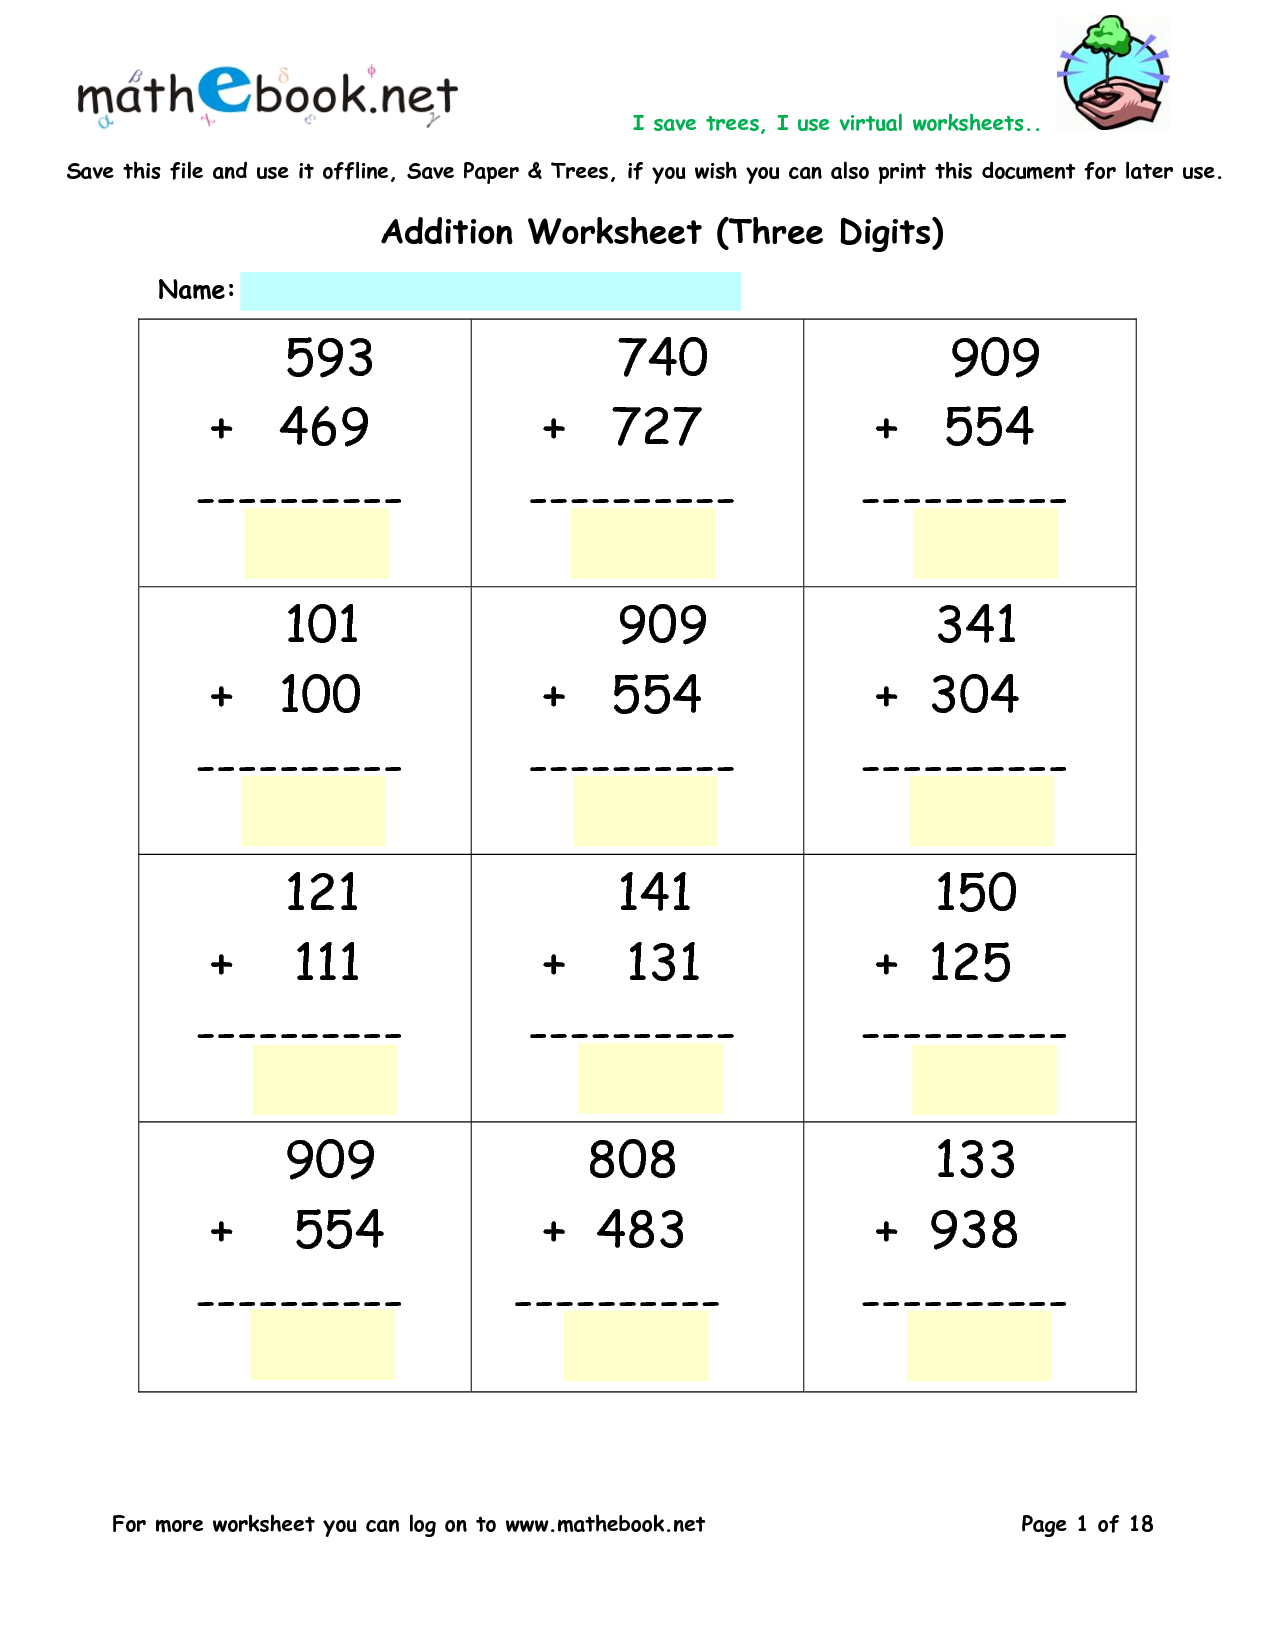 Addition Worksheets TripleDigit Addition Math